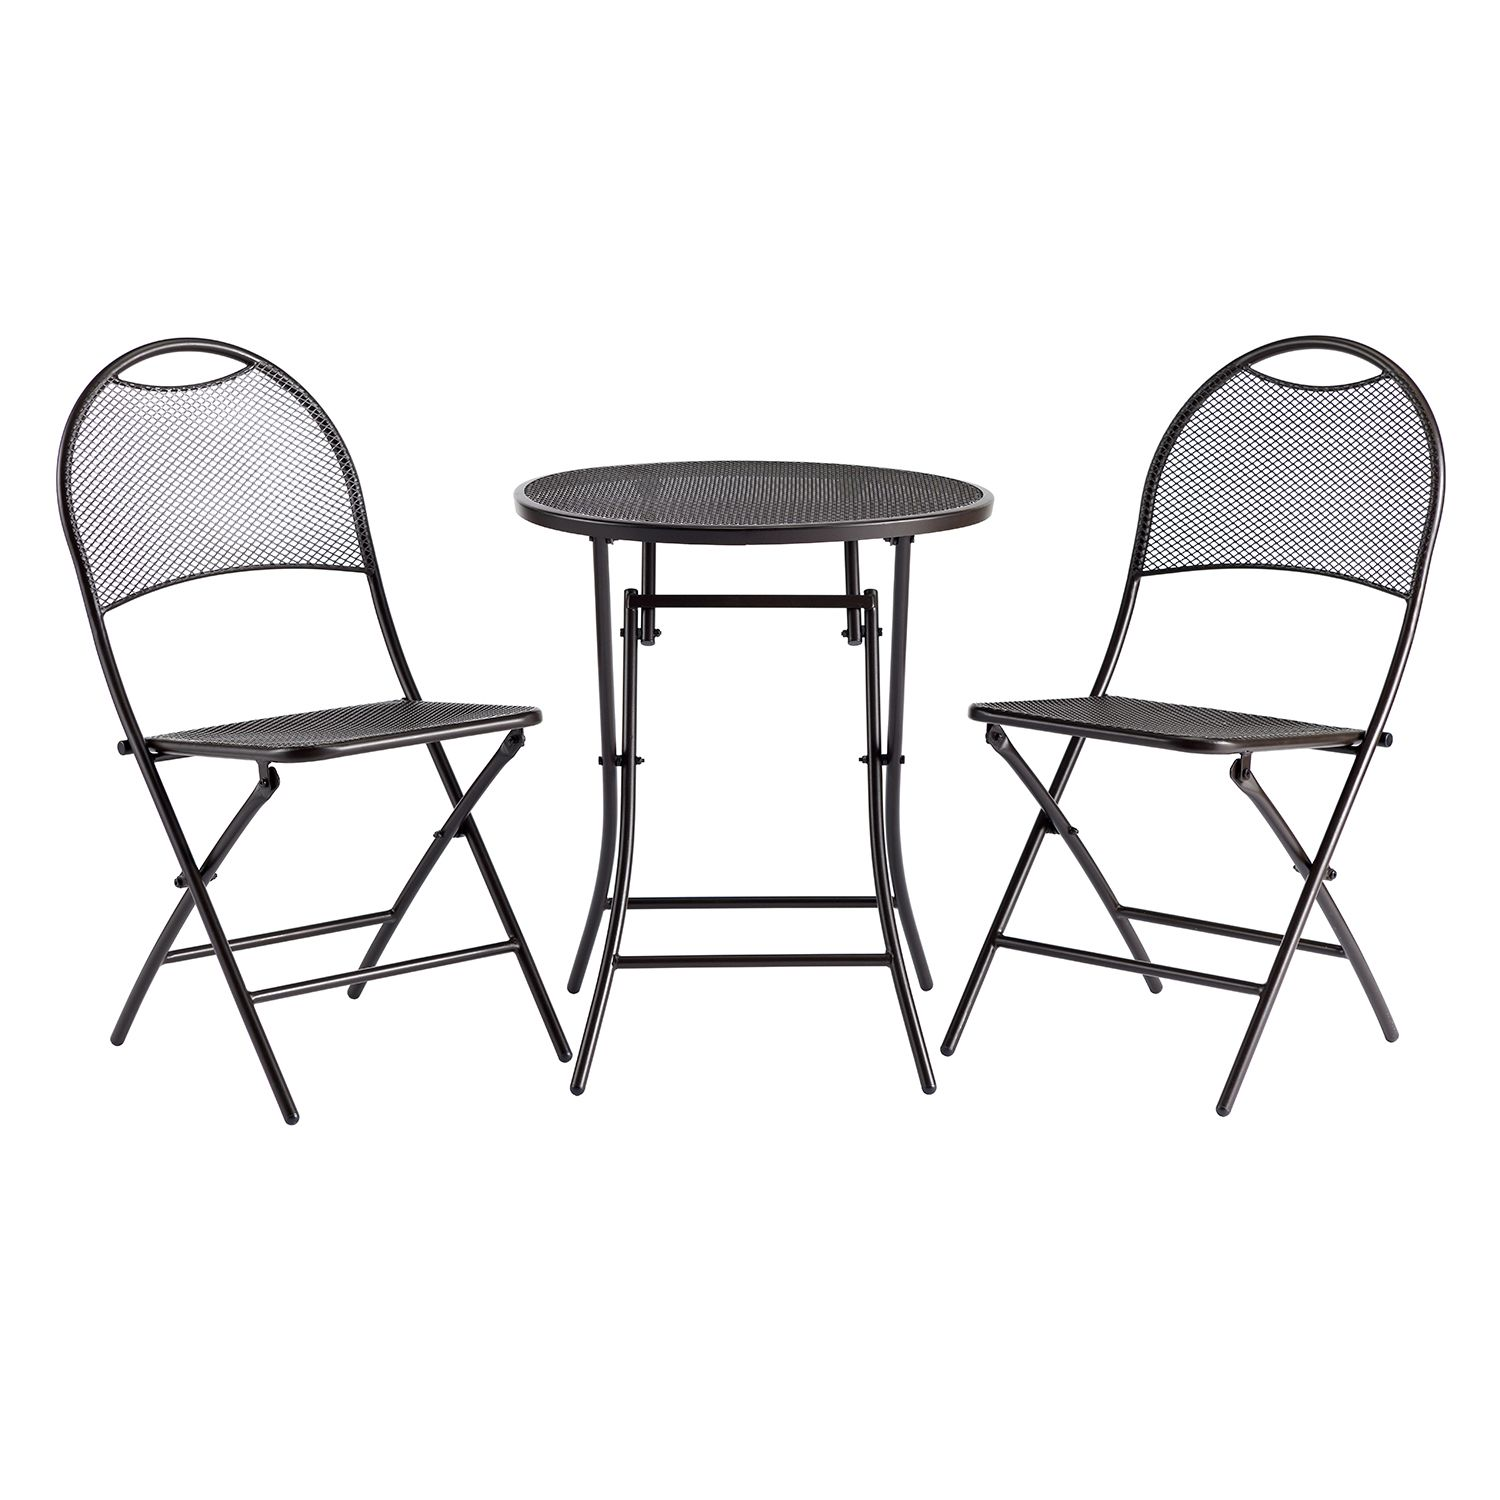 SONOMA Goods For Life™ Folding Bistro Table 3 Piece Set